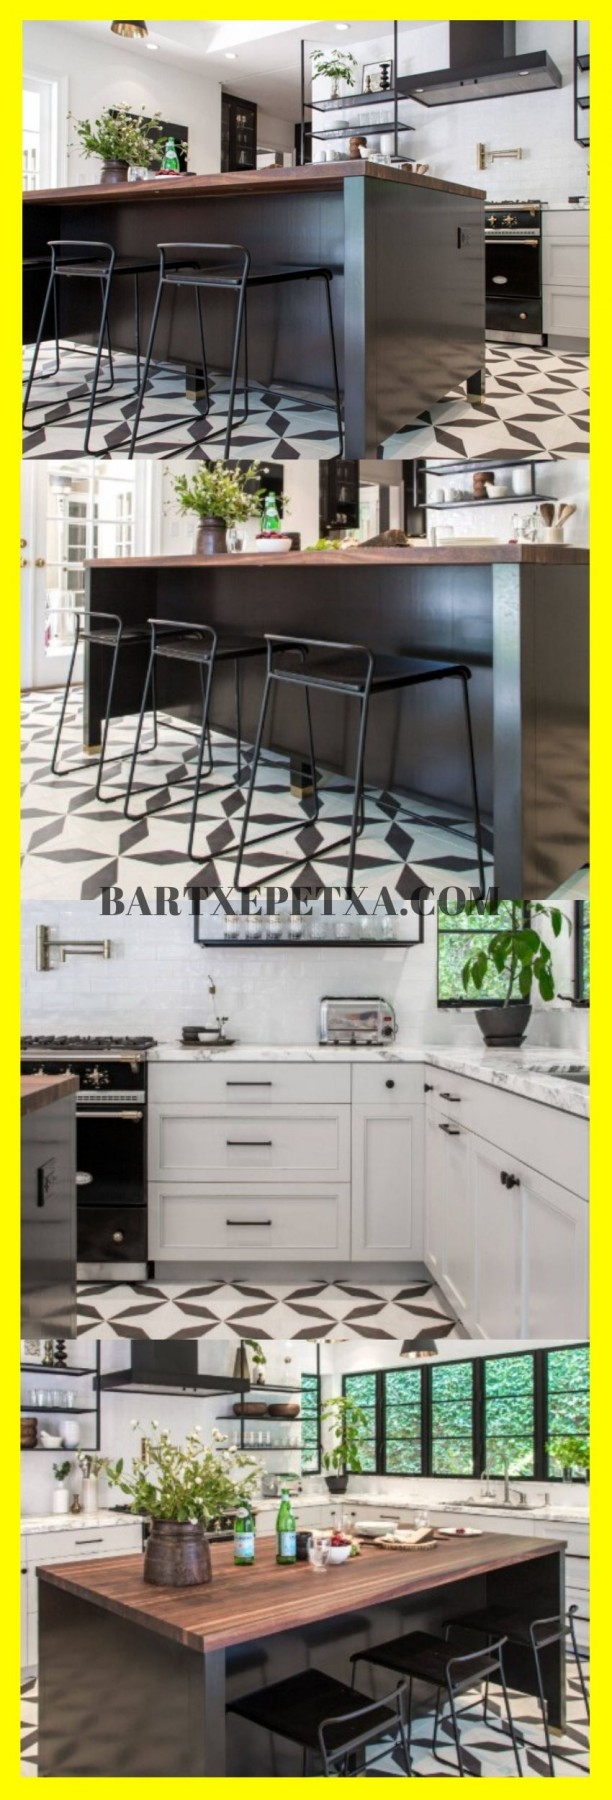 white kitchen cabinets with tile floor